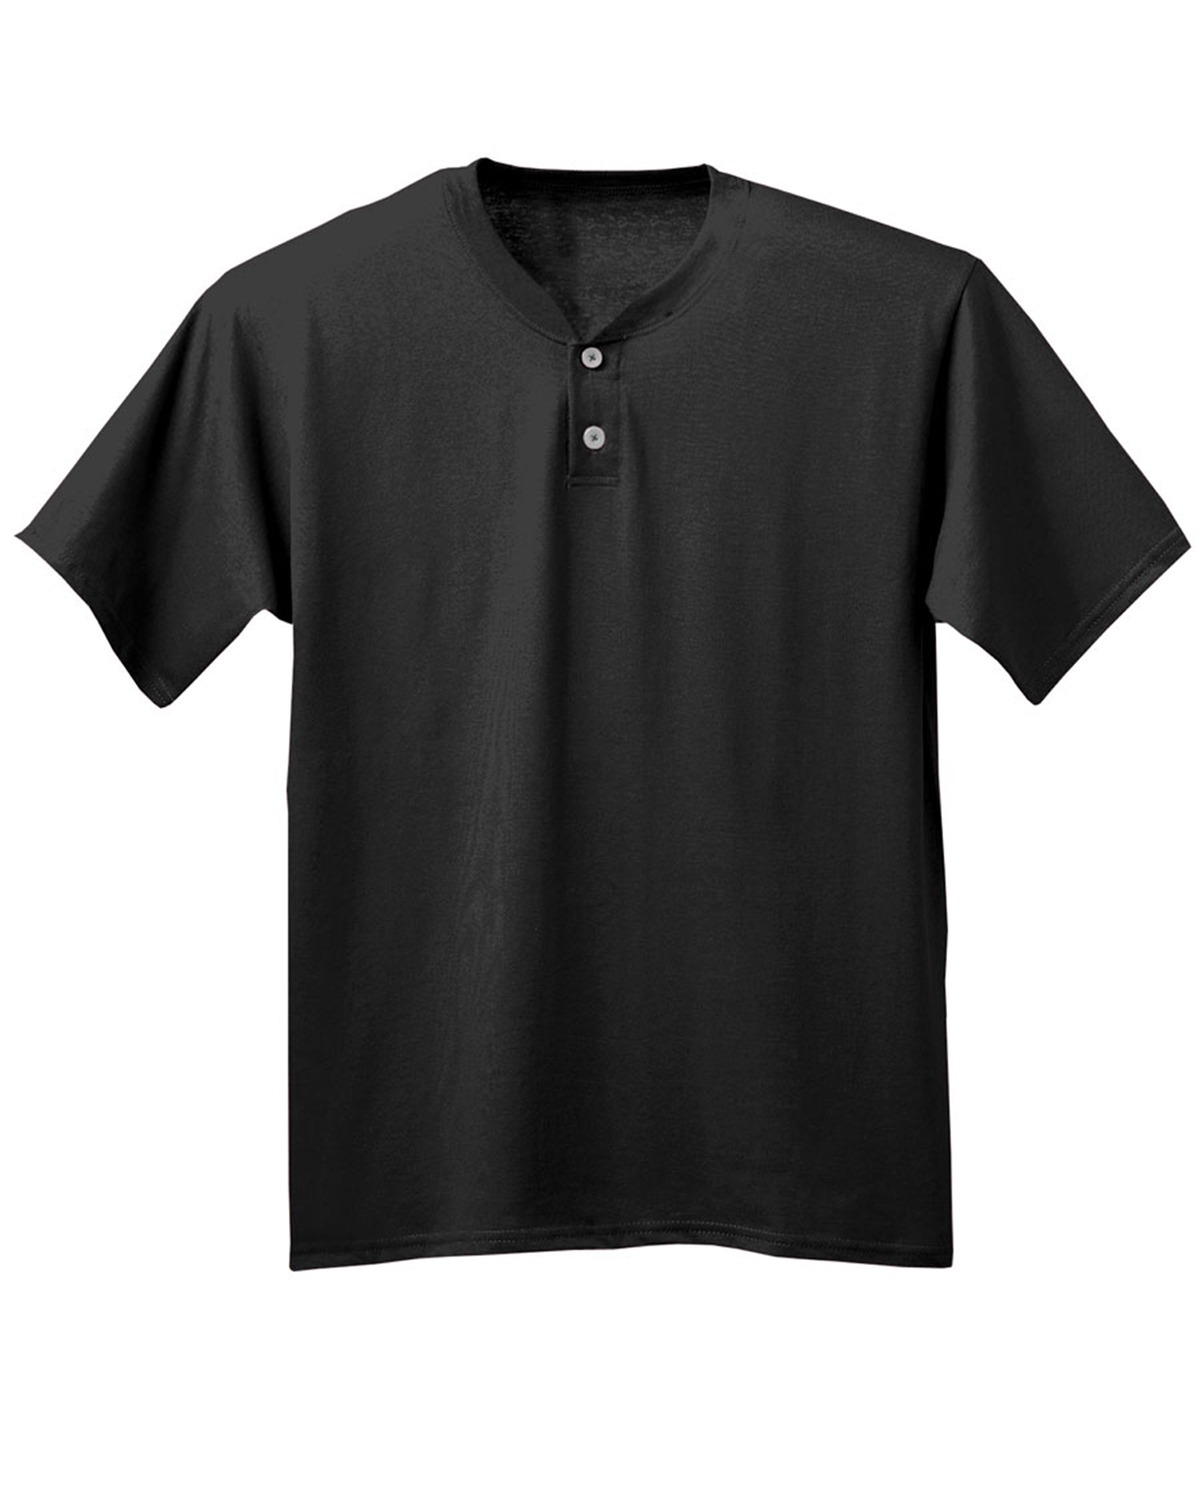 Youth Tek 2-Button Henley Jersey